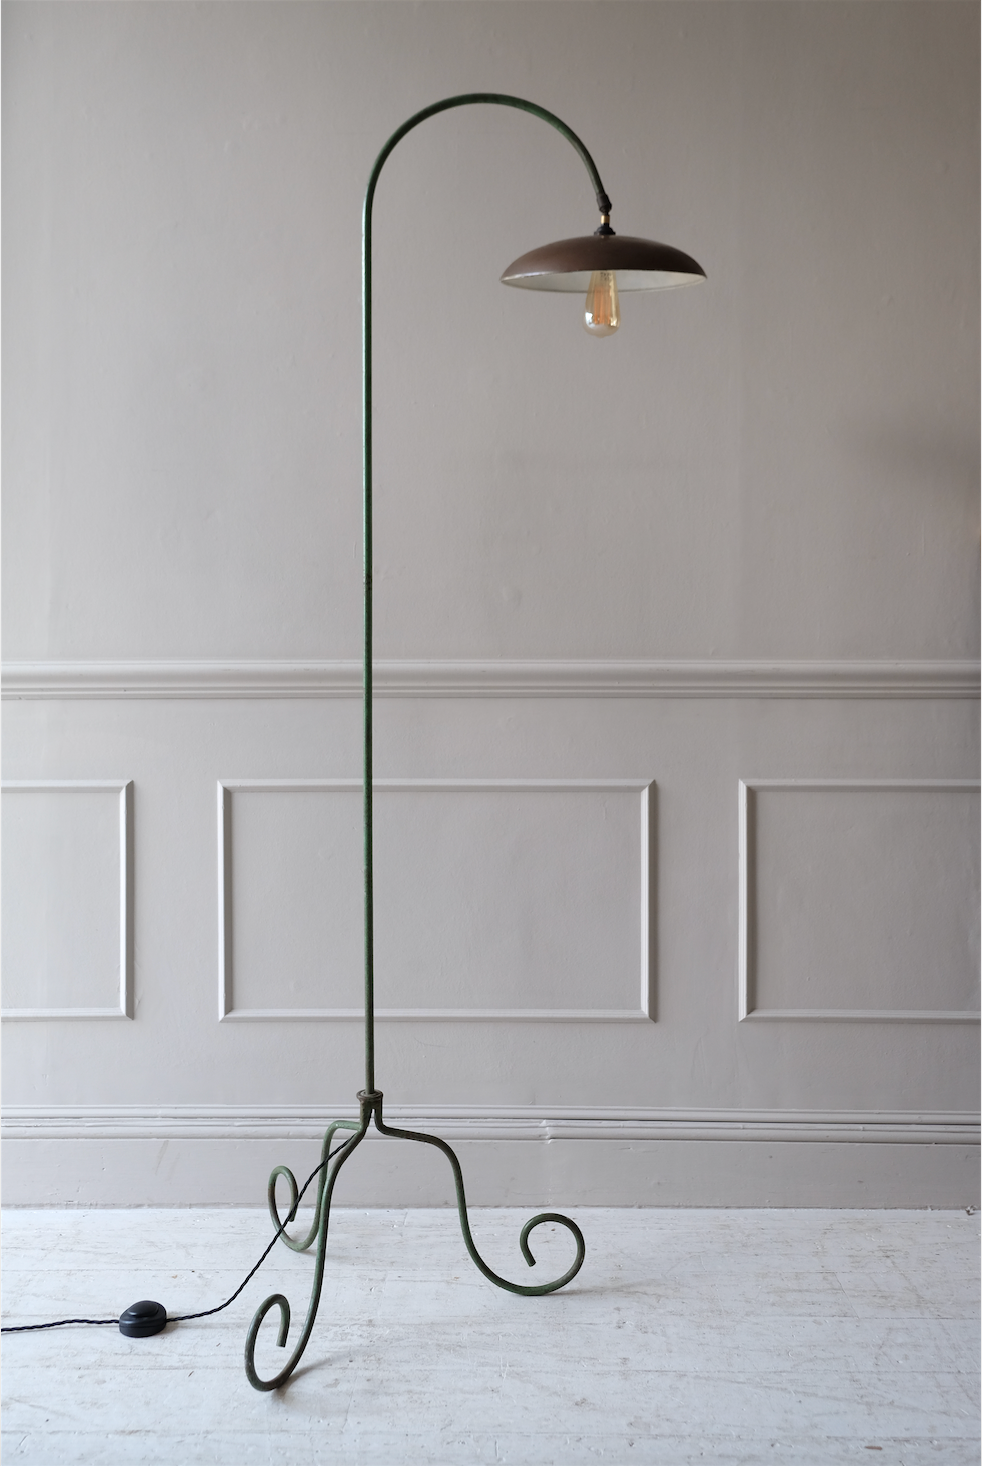 Mid 20th C. Curved Floor Lamp